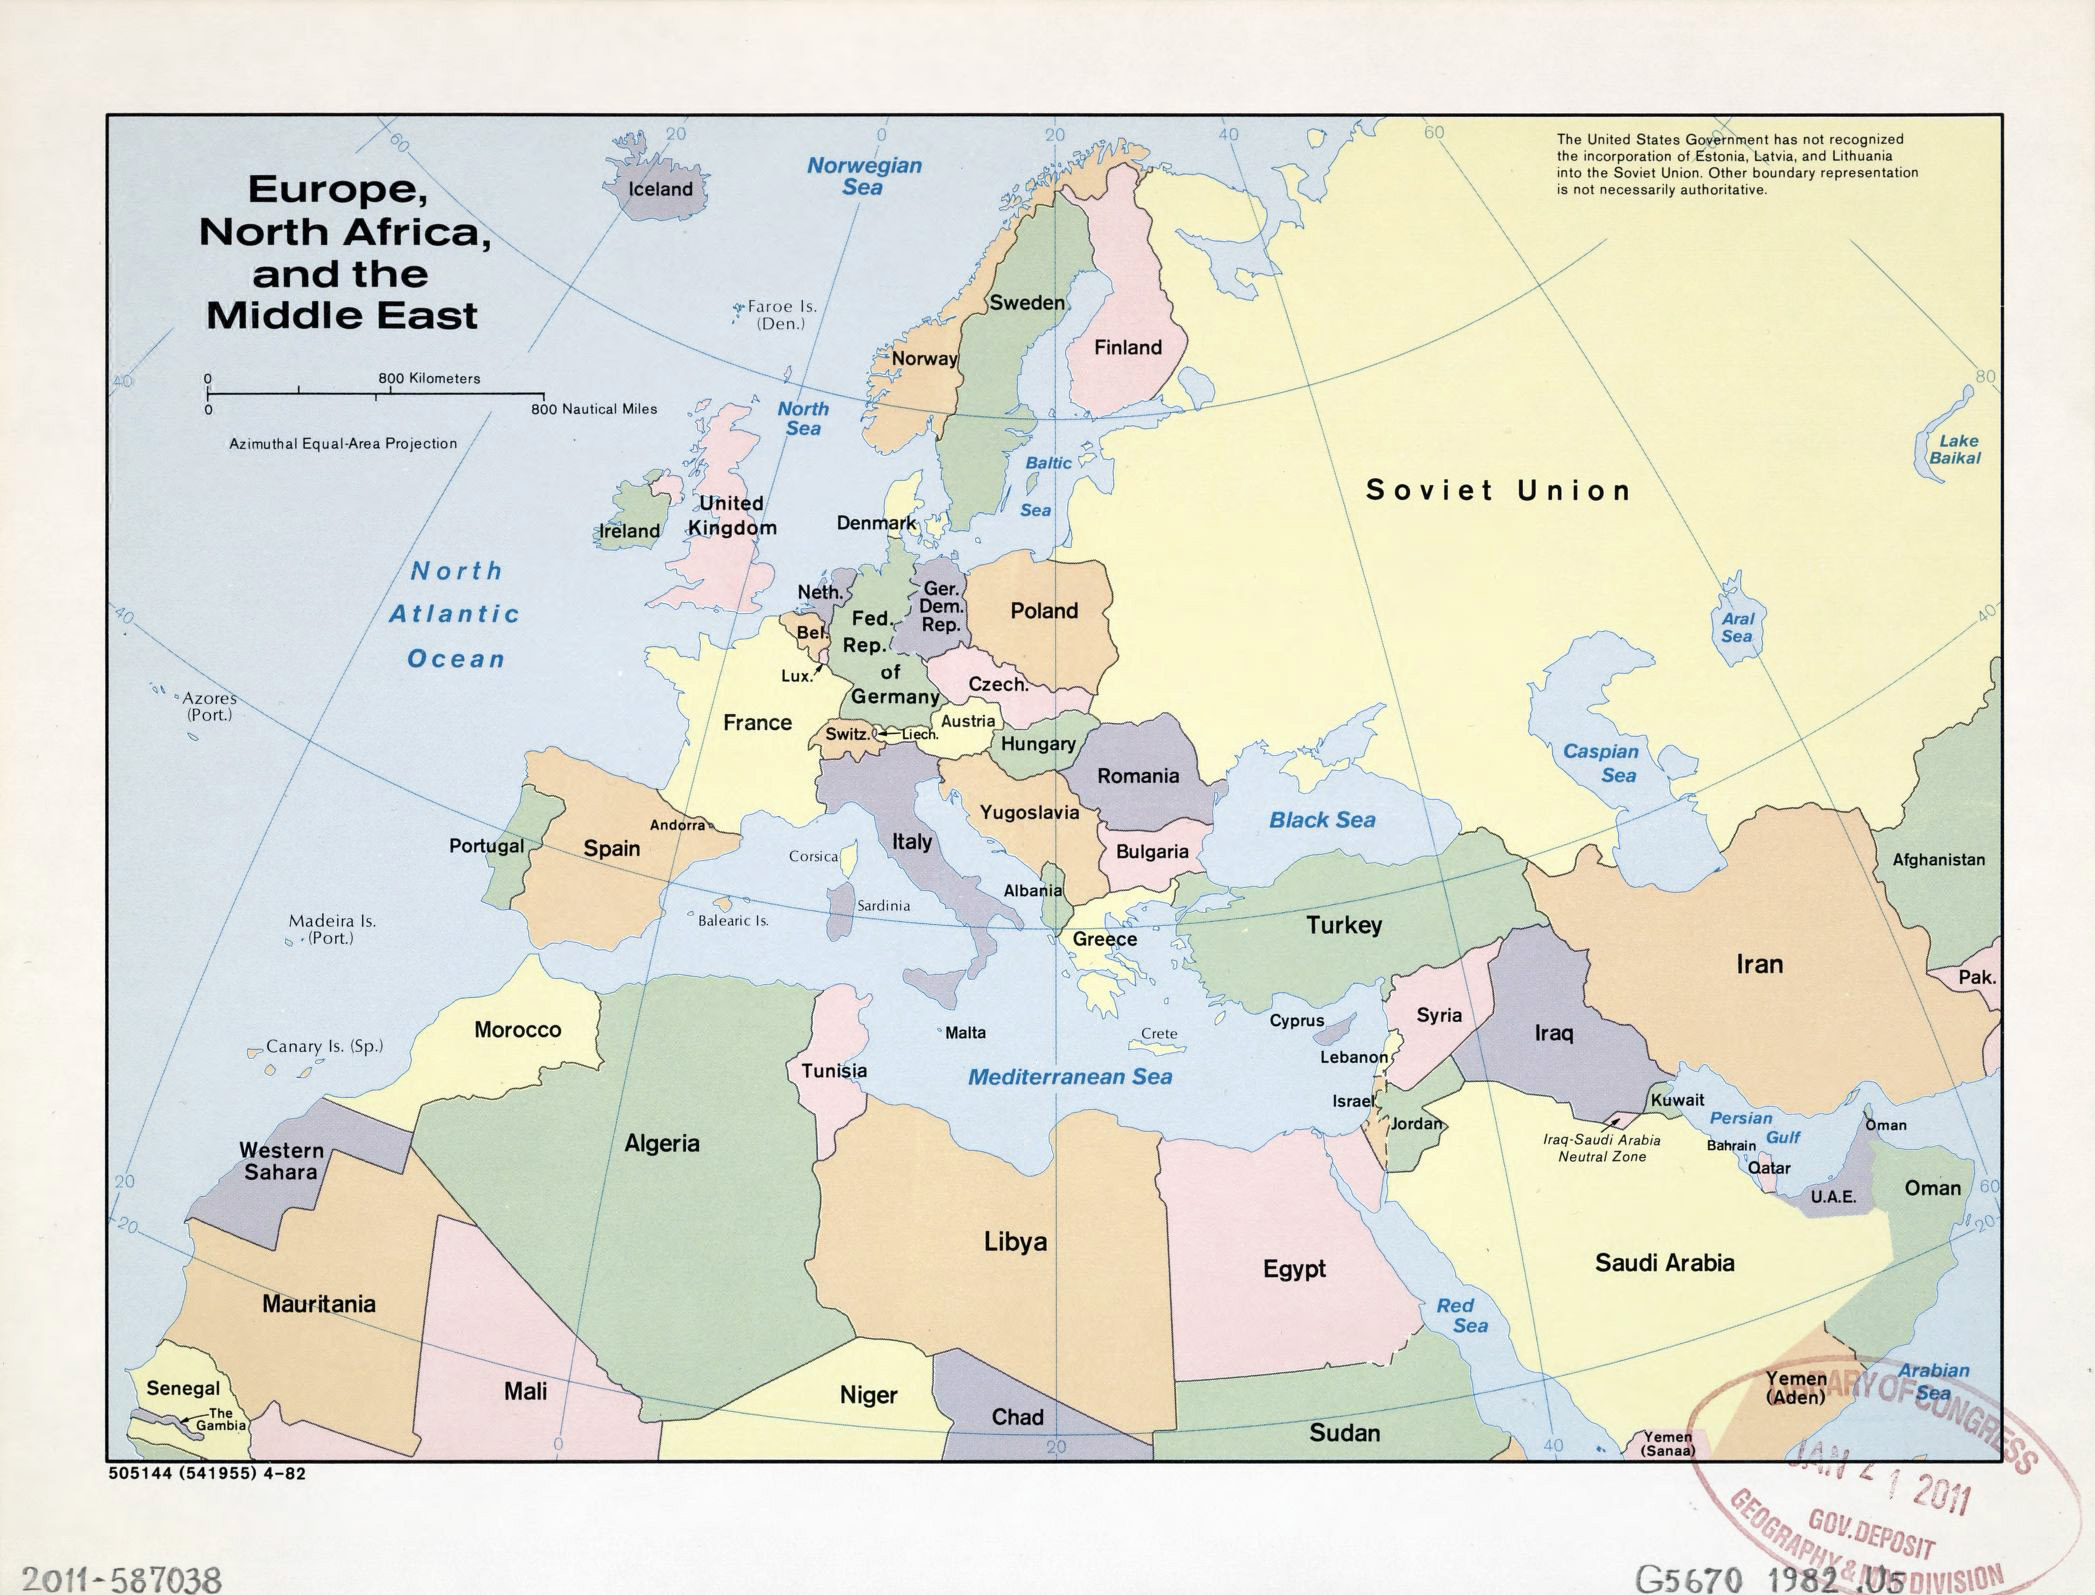 Old Maps Of Europe Detailed Old Political Physical Relief - Middle east political map 1900